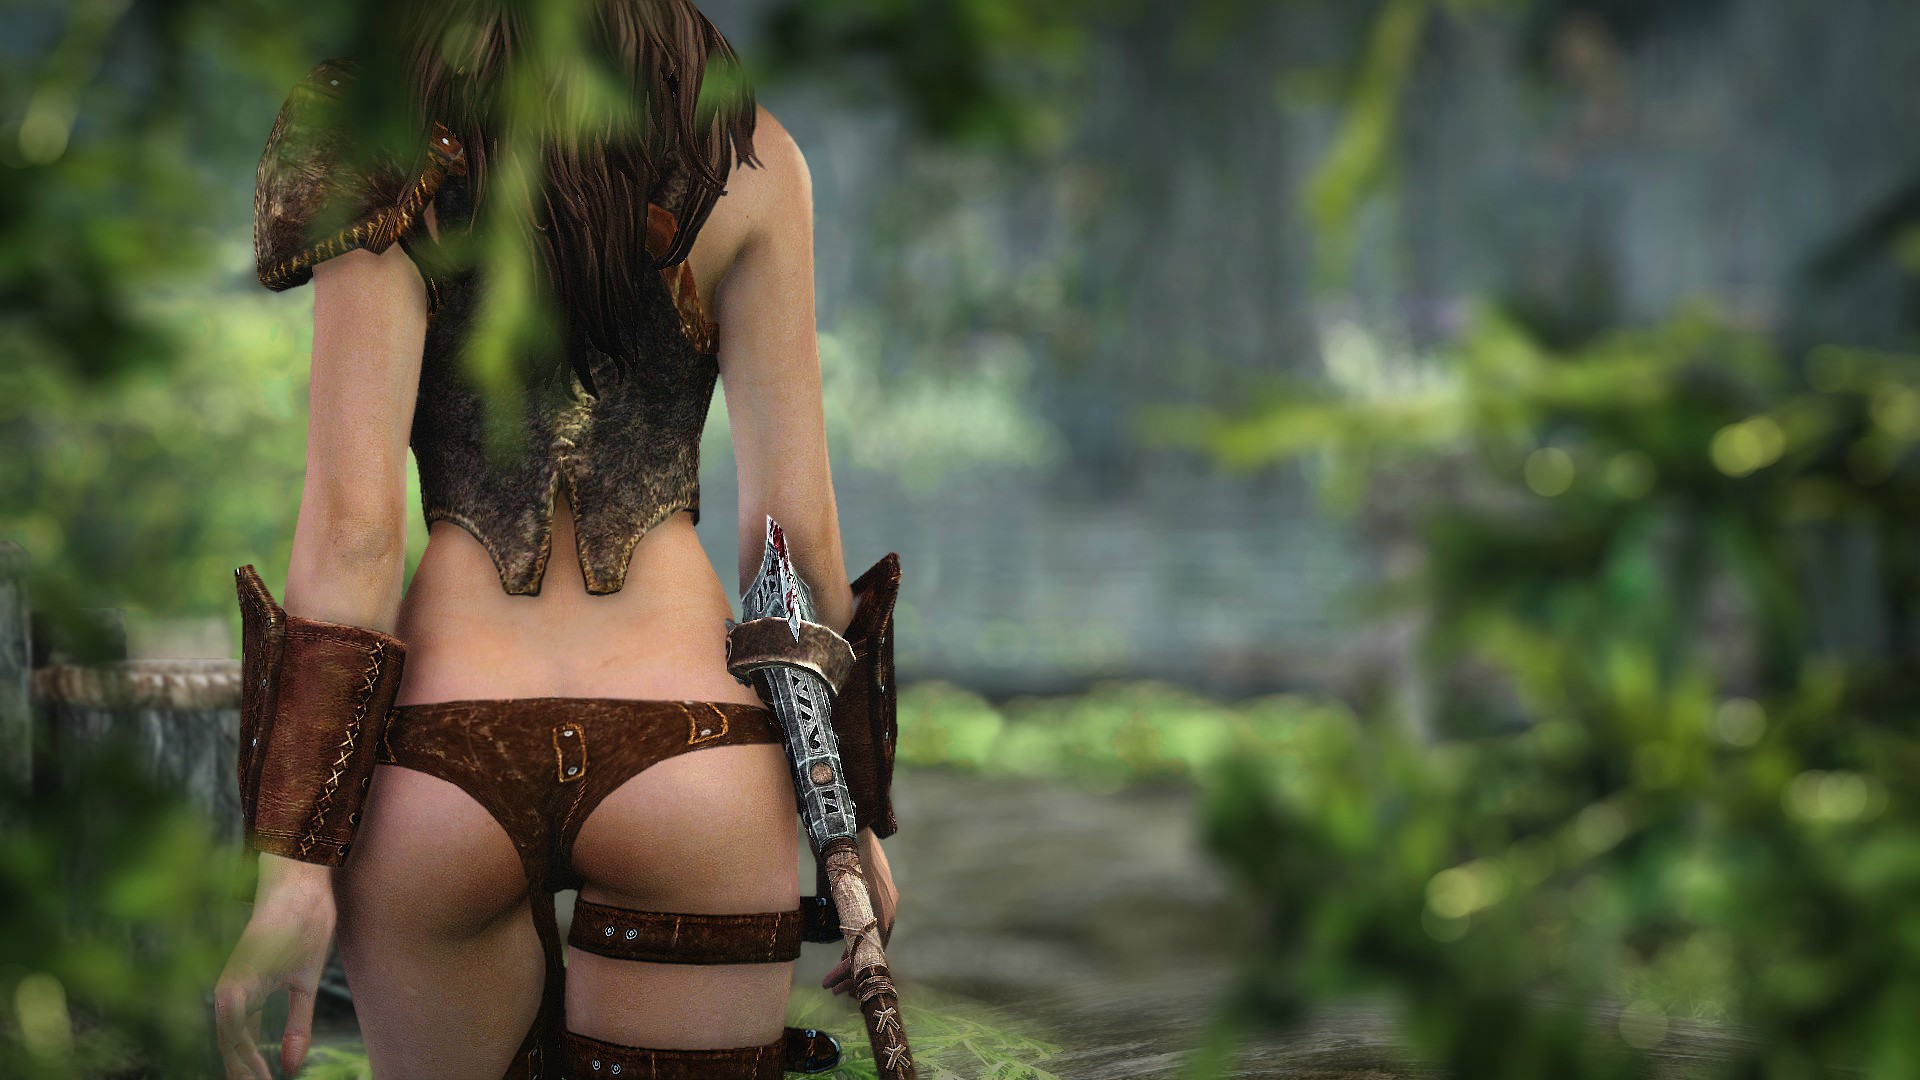 Elder scrolls girl butts sex picture